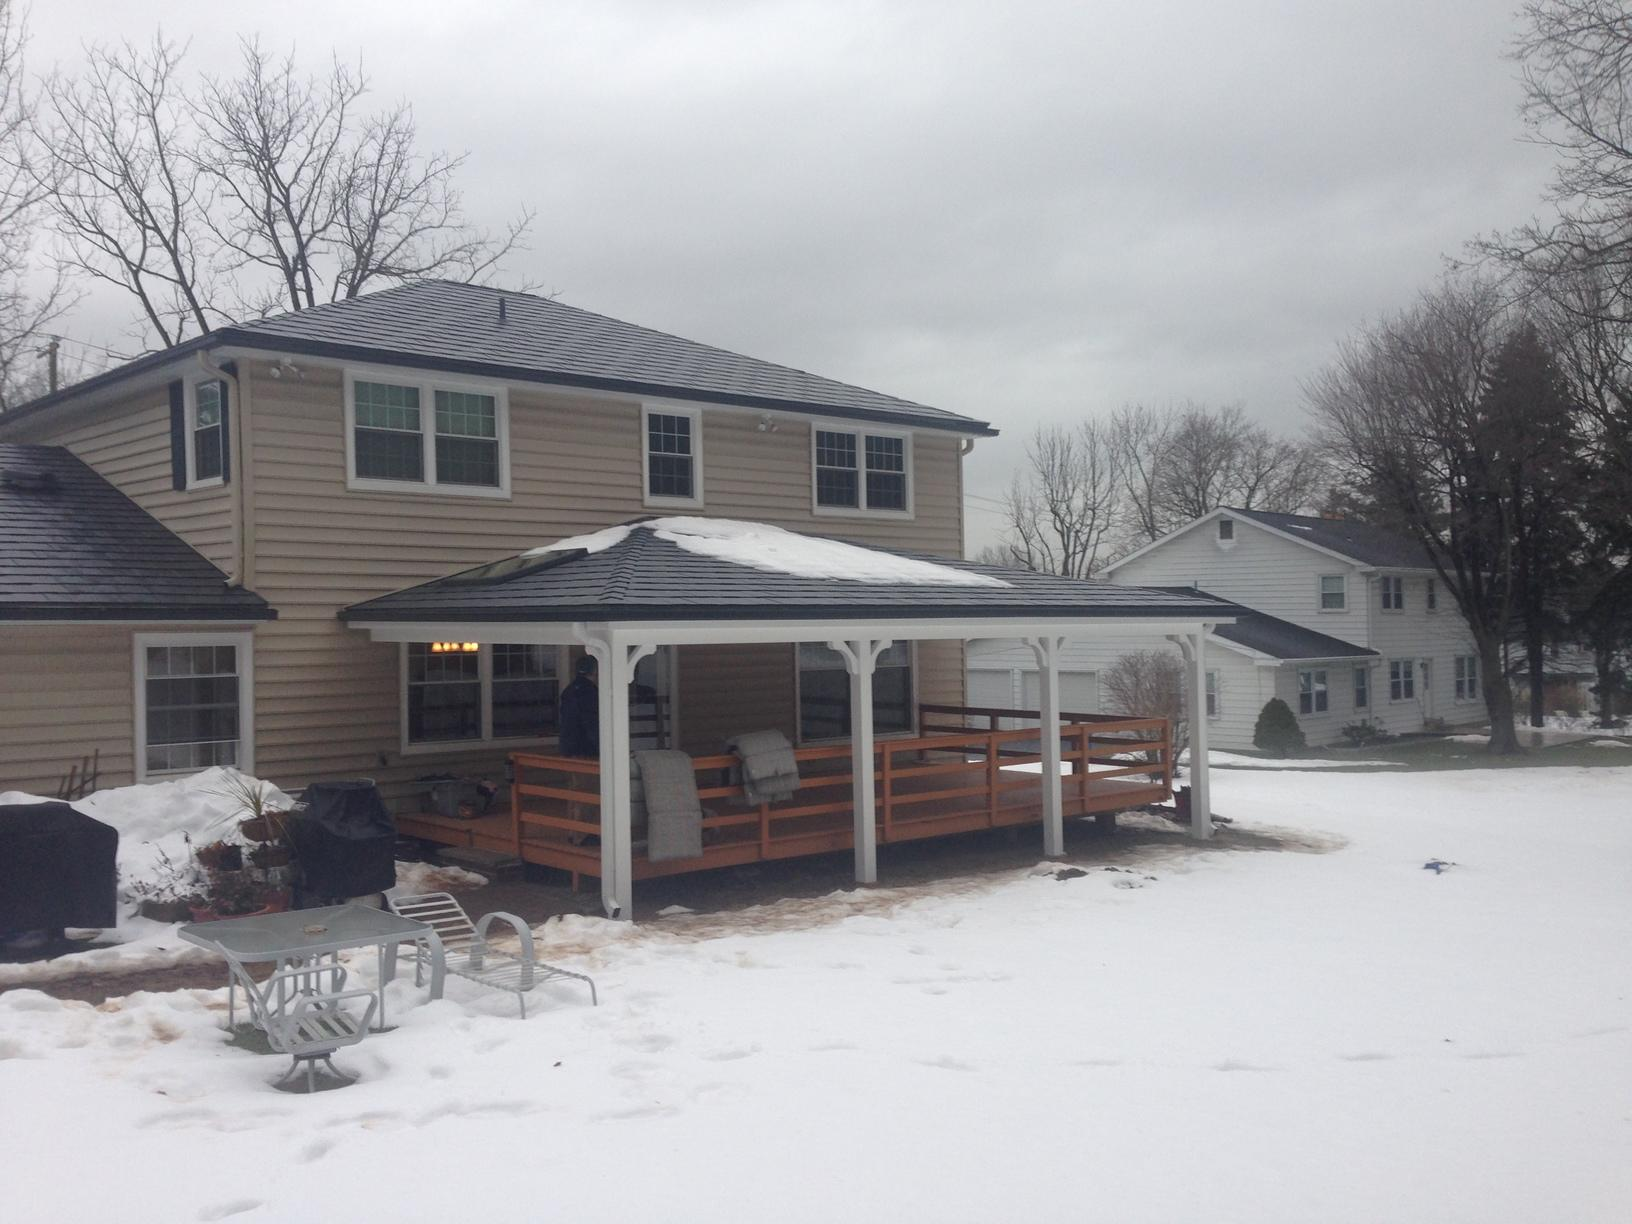 Vermont Blue Metal Slate Roof, Tuscan Clay Beaded Insulated Vinyl Siding, Custom Marvin Infinity Double Hung Fiberglass Windows, and Rear Porch Portico Installation in Lafayette Hill, PA - After Photo